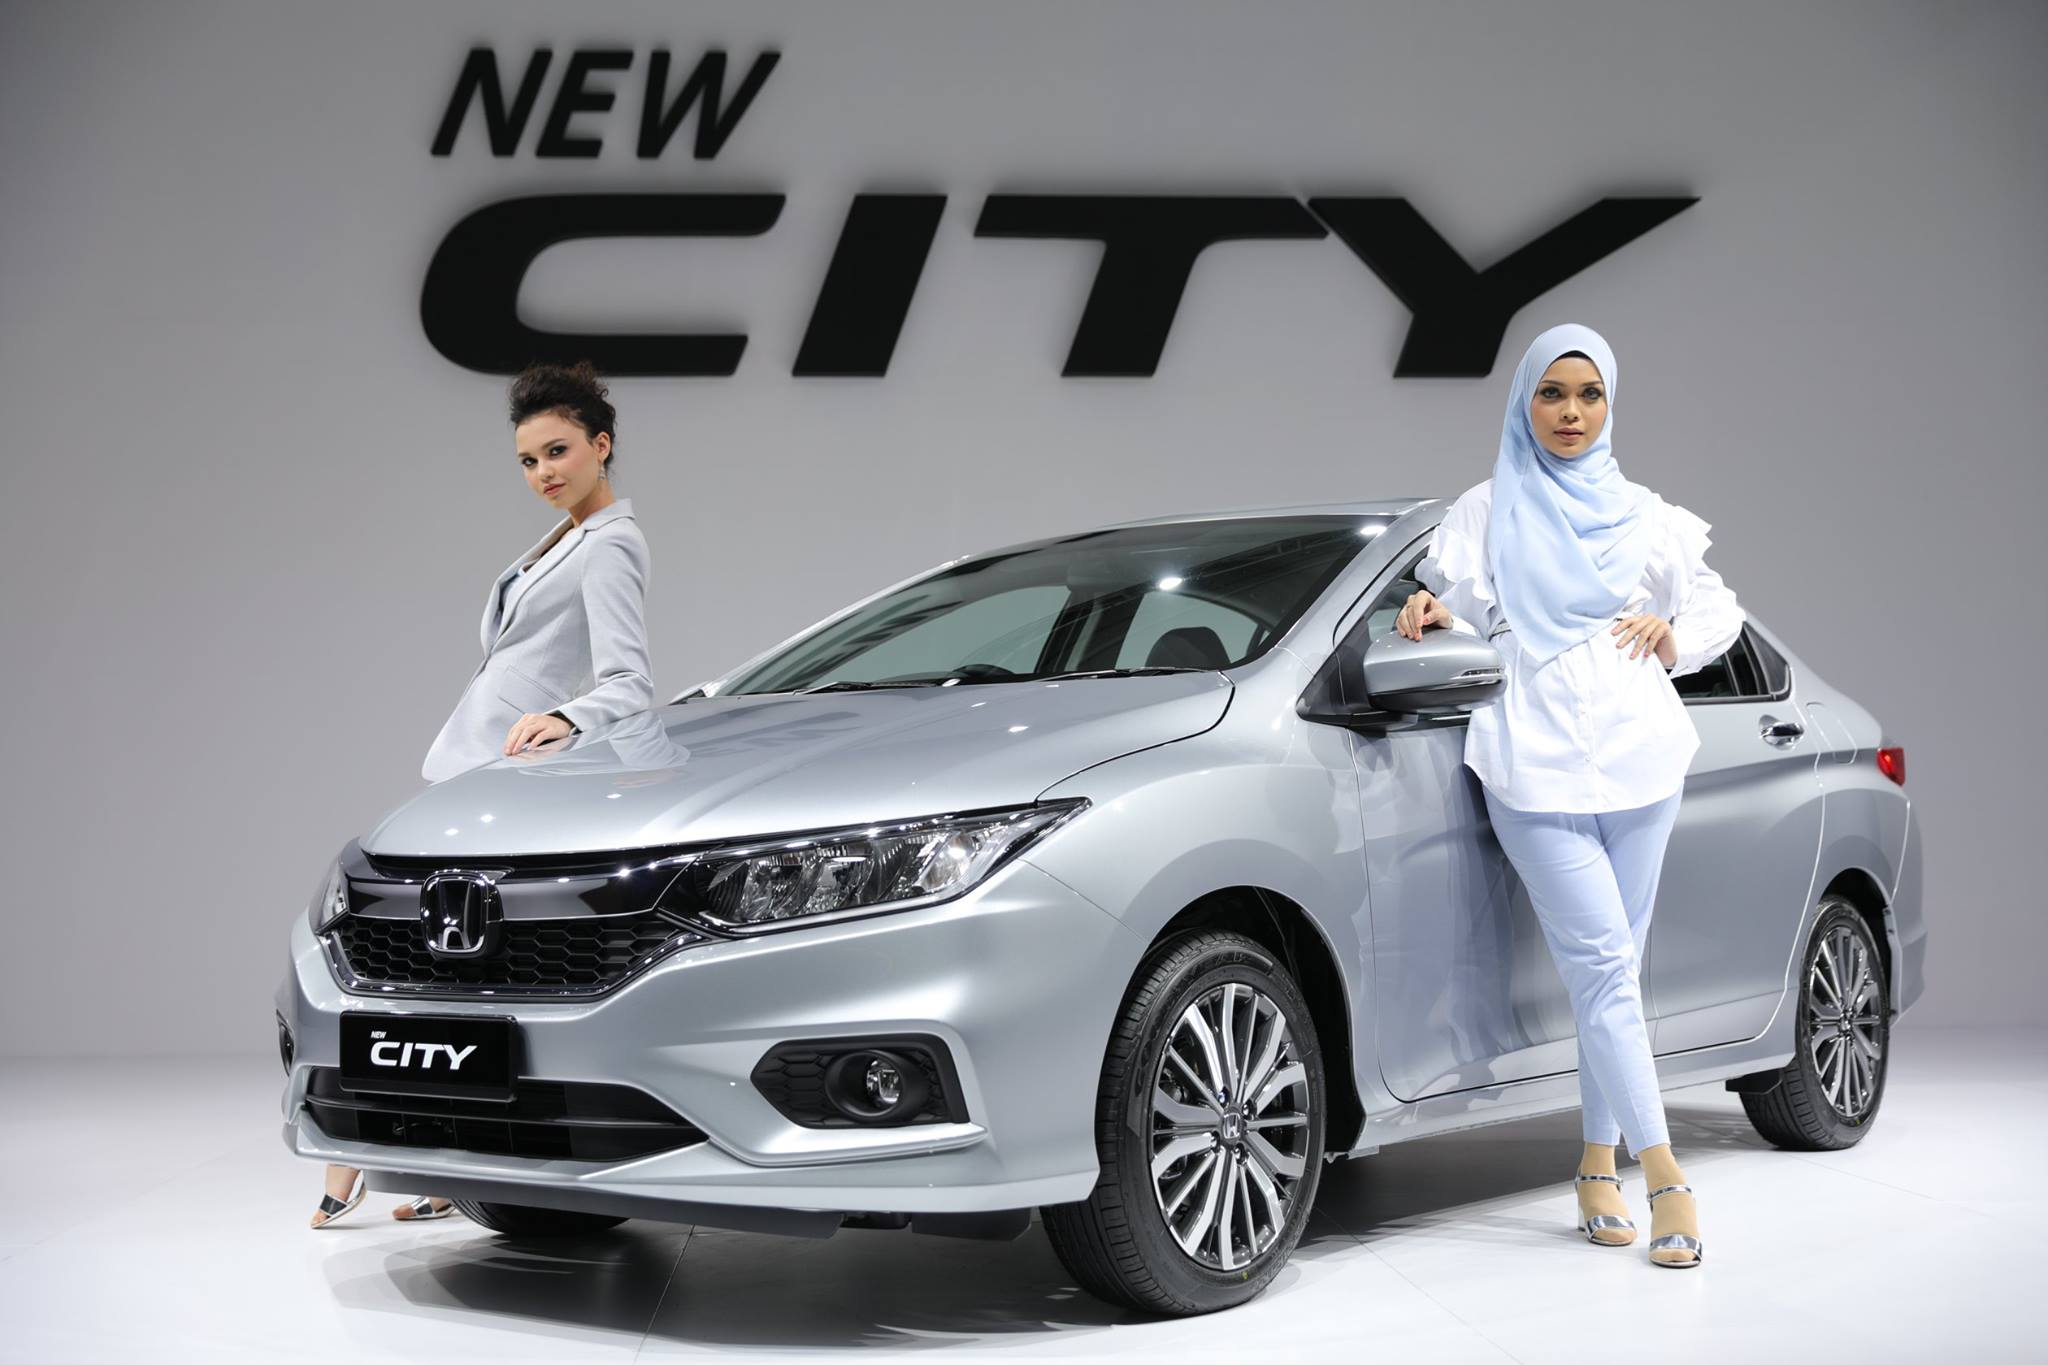 Honda Malaysia Launched The New City 2017 In On 2 March With One Of Most Popular B Segment Cars Country Now Equipped